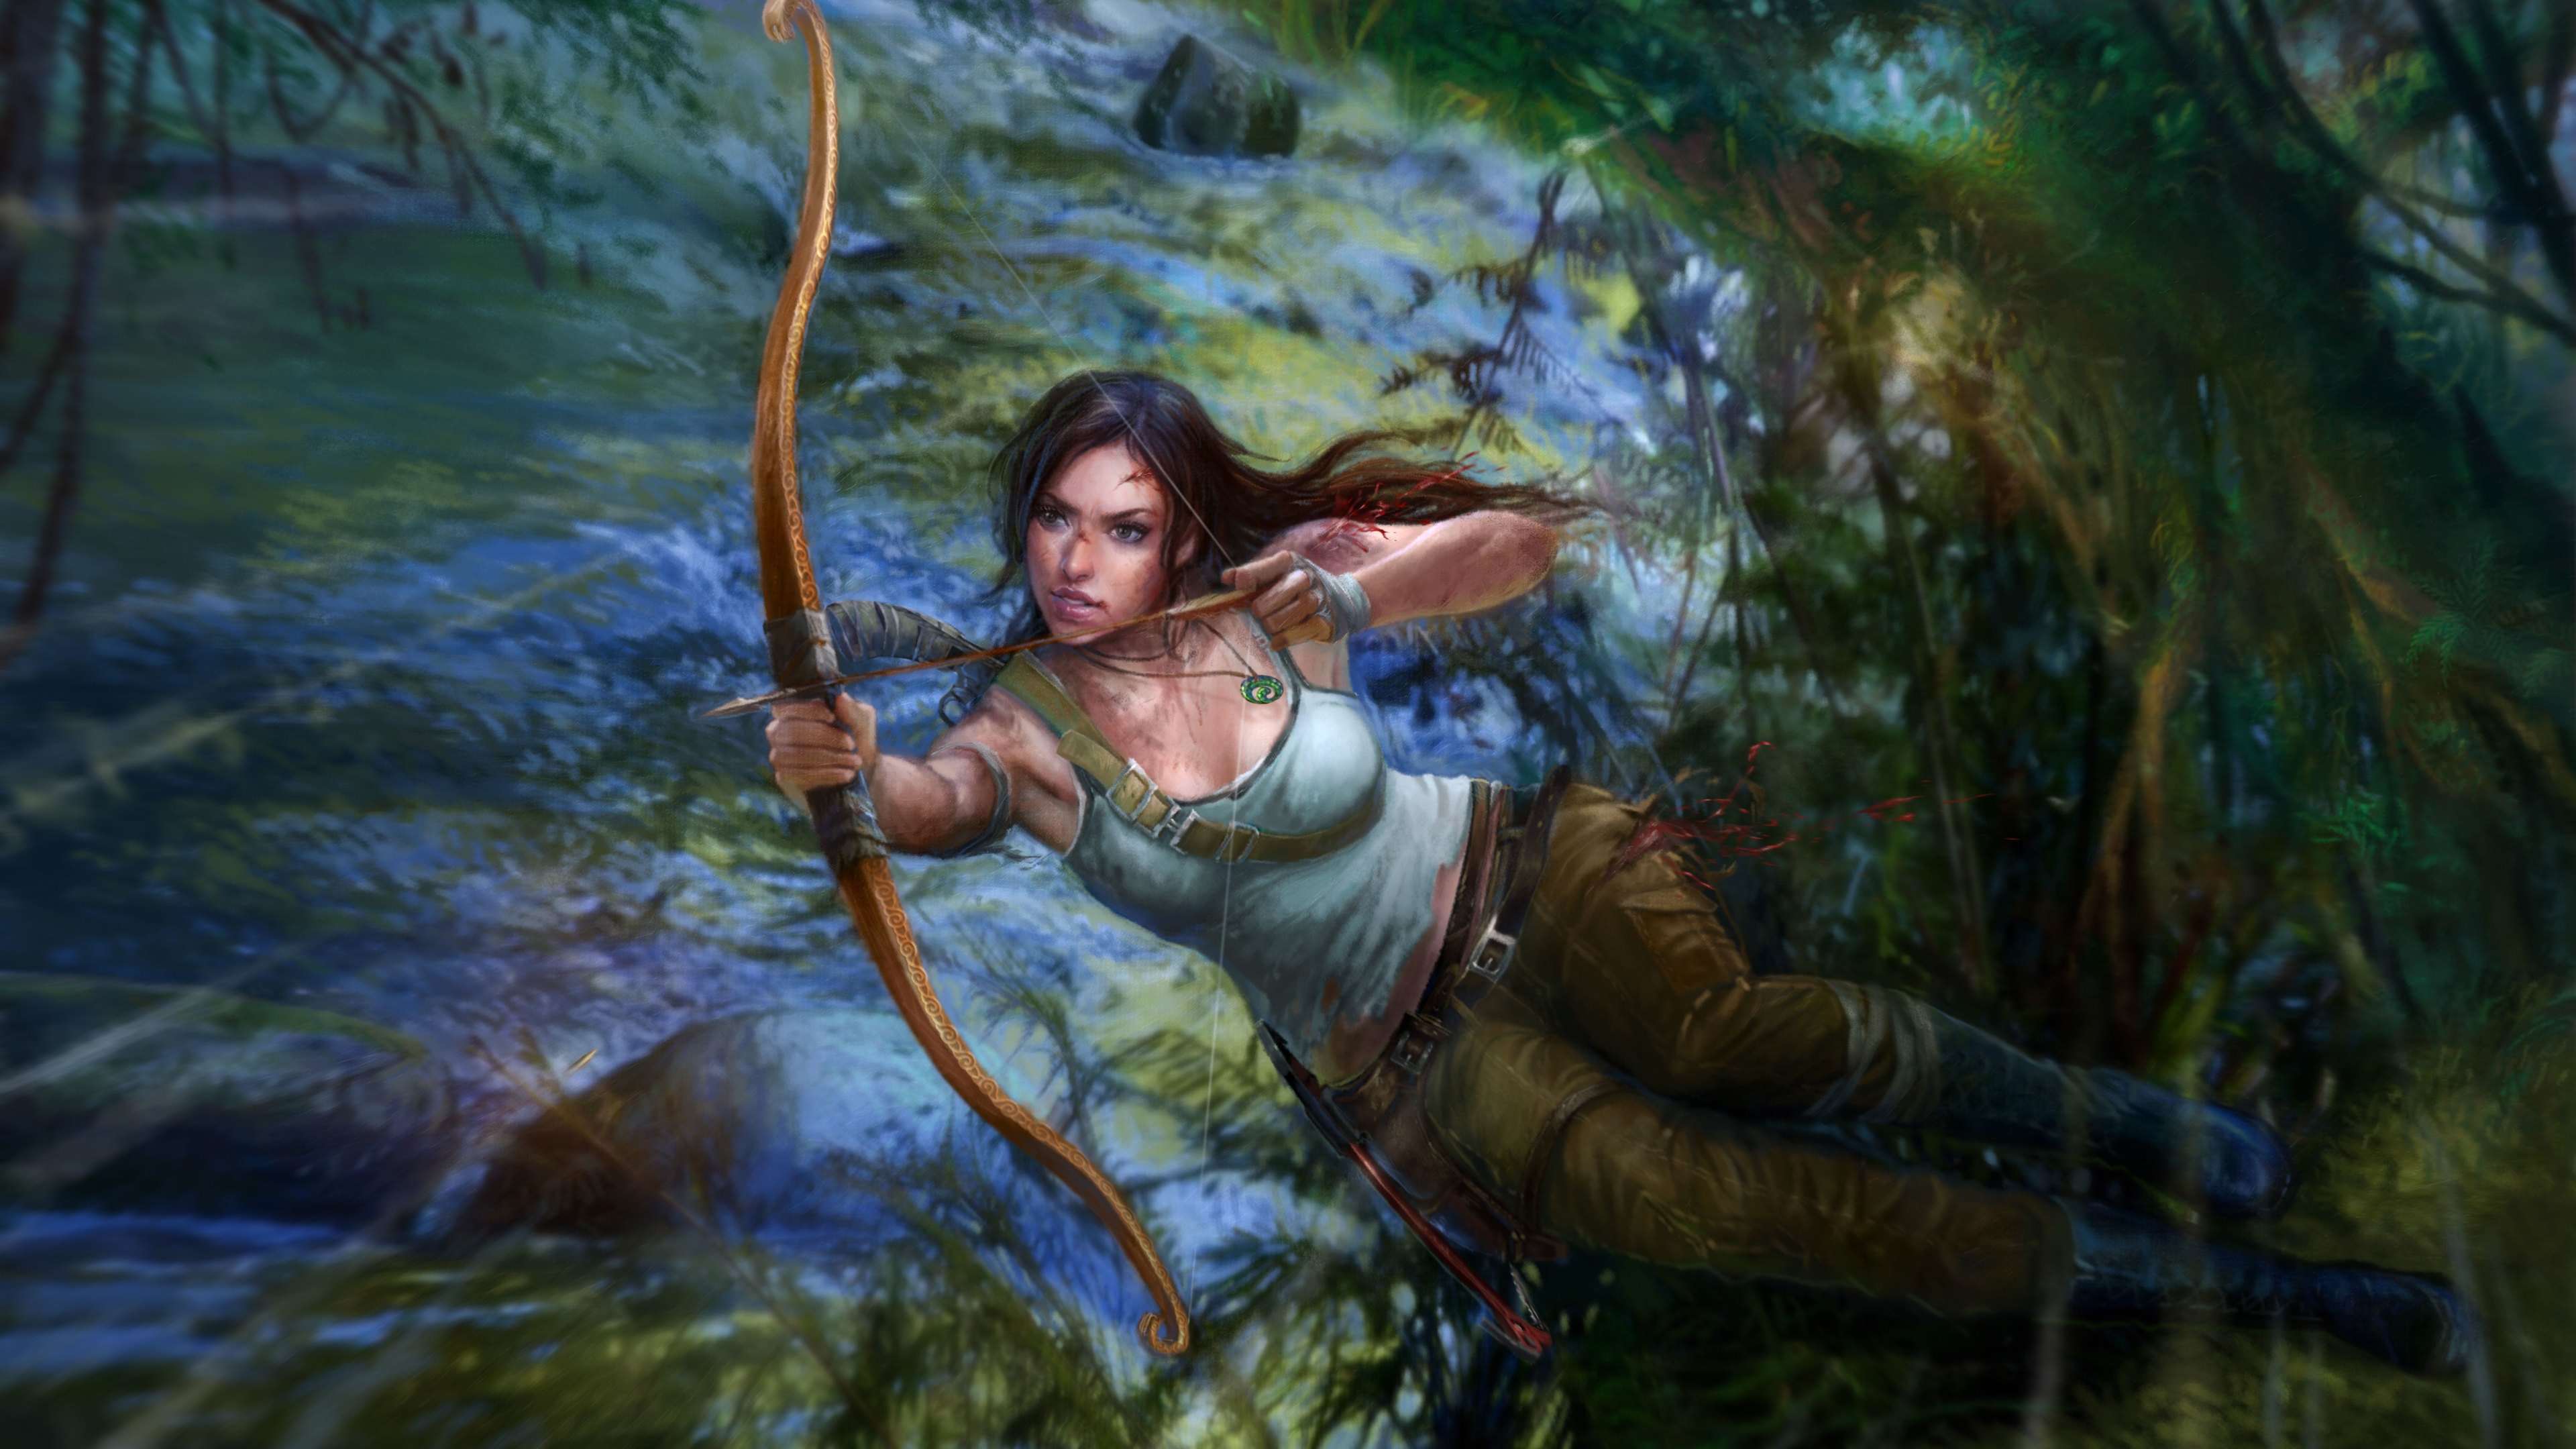 tomb raider 4k arts 1543621206 - Tomb Raider 4k Arts - xbox games wallpapers, tomb raider wallpapers, ps games wallpapers, pc games wallpapers, hd-wallpapers, games wallpapers, deviantart wallpapers, artwork wallpapers, 4k-wallpapers